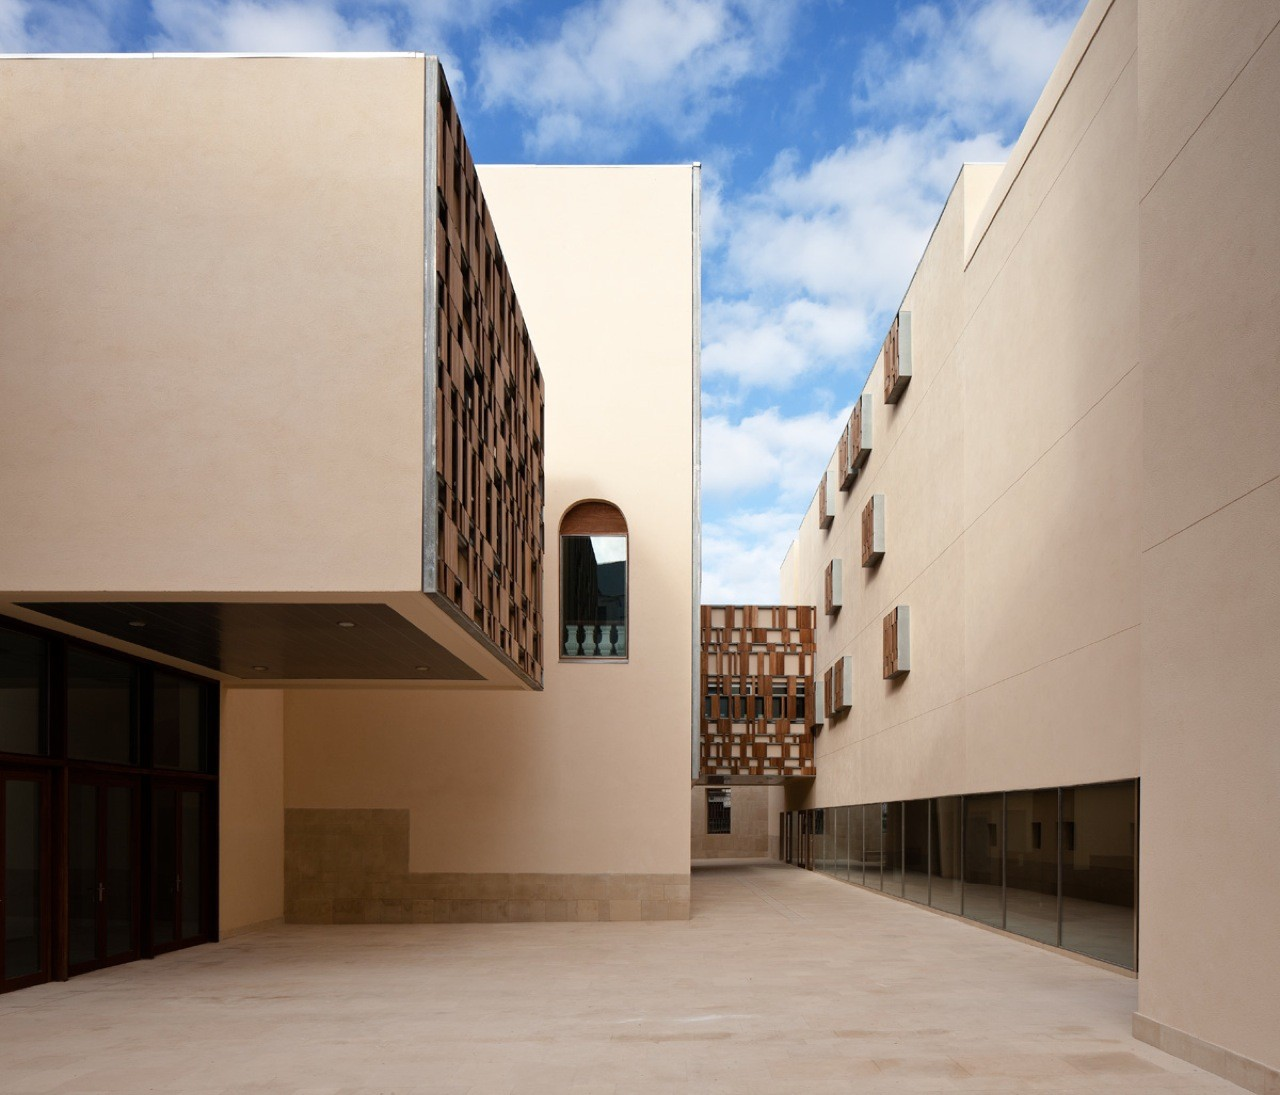 Renovation of the Baeza Town Hall / Viar Estudio Arquitectura, © Fernando Alda